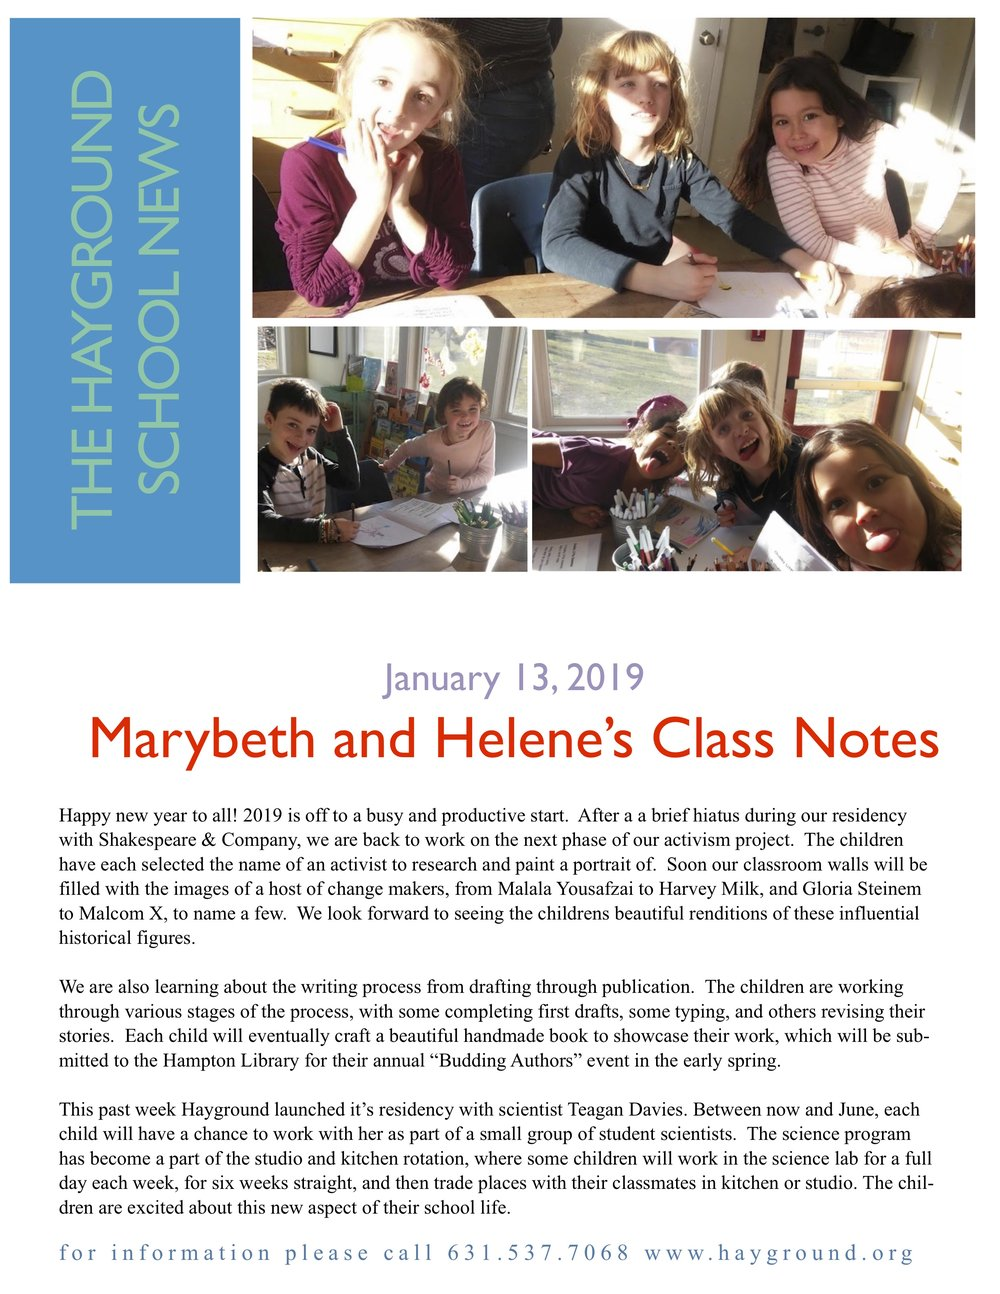 Marybeth & Helene Class Notes 1-13-19 copy.jpg